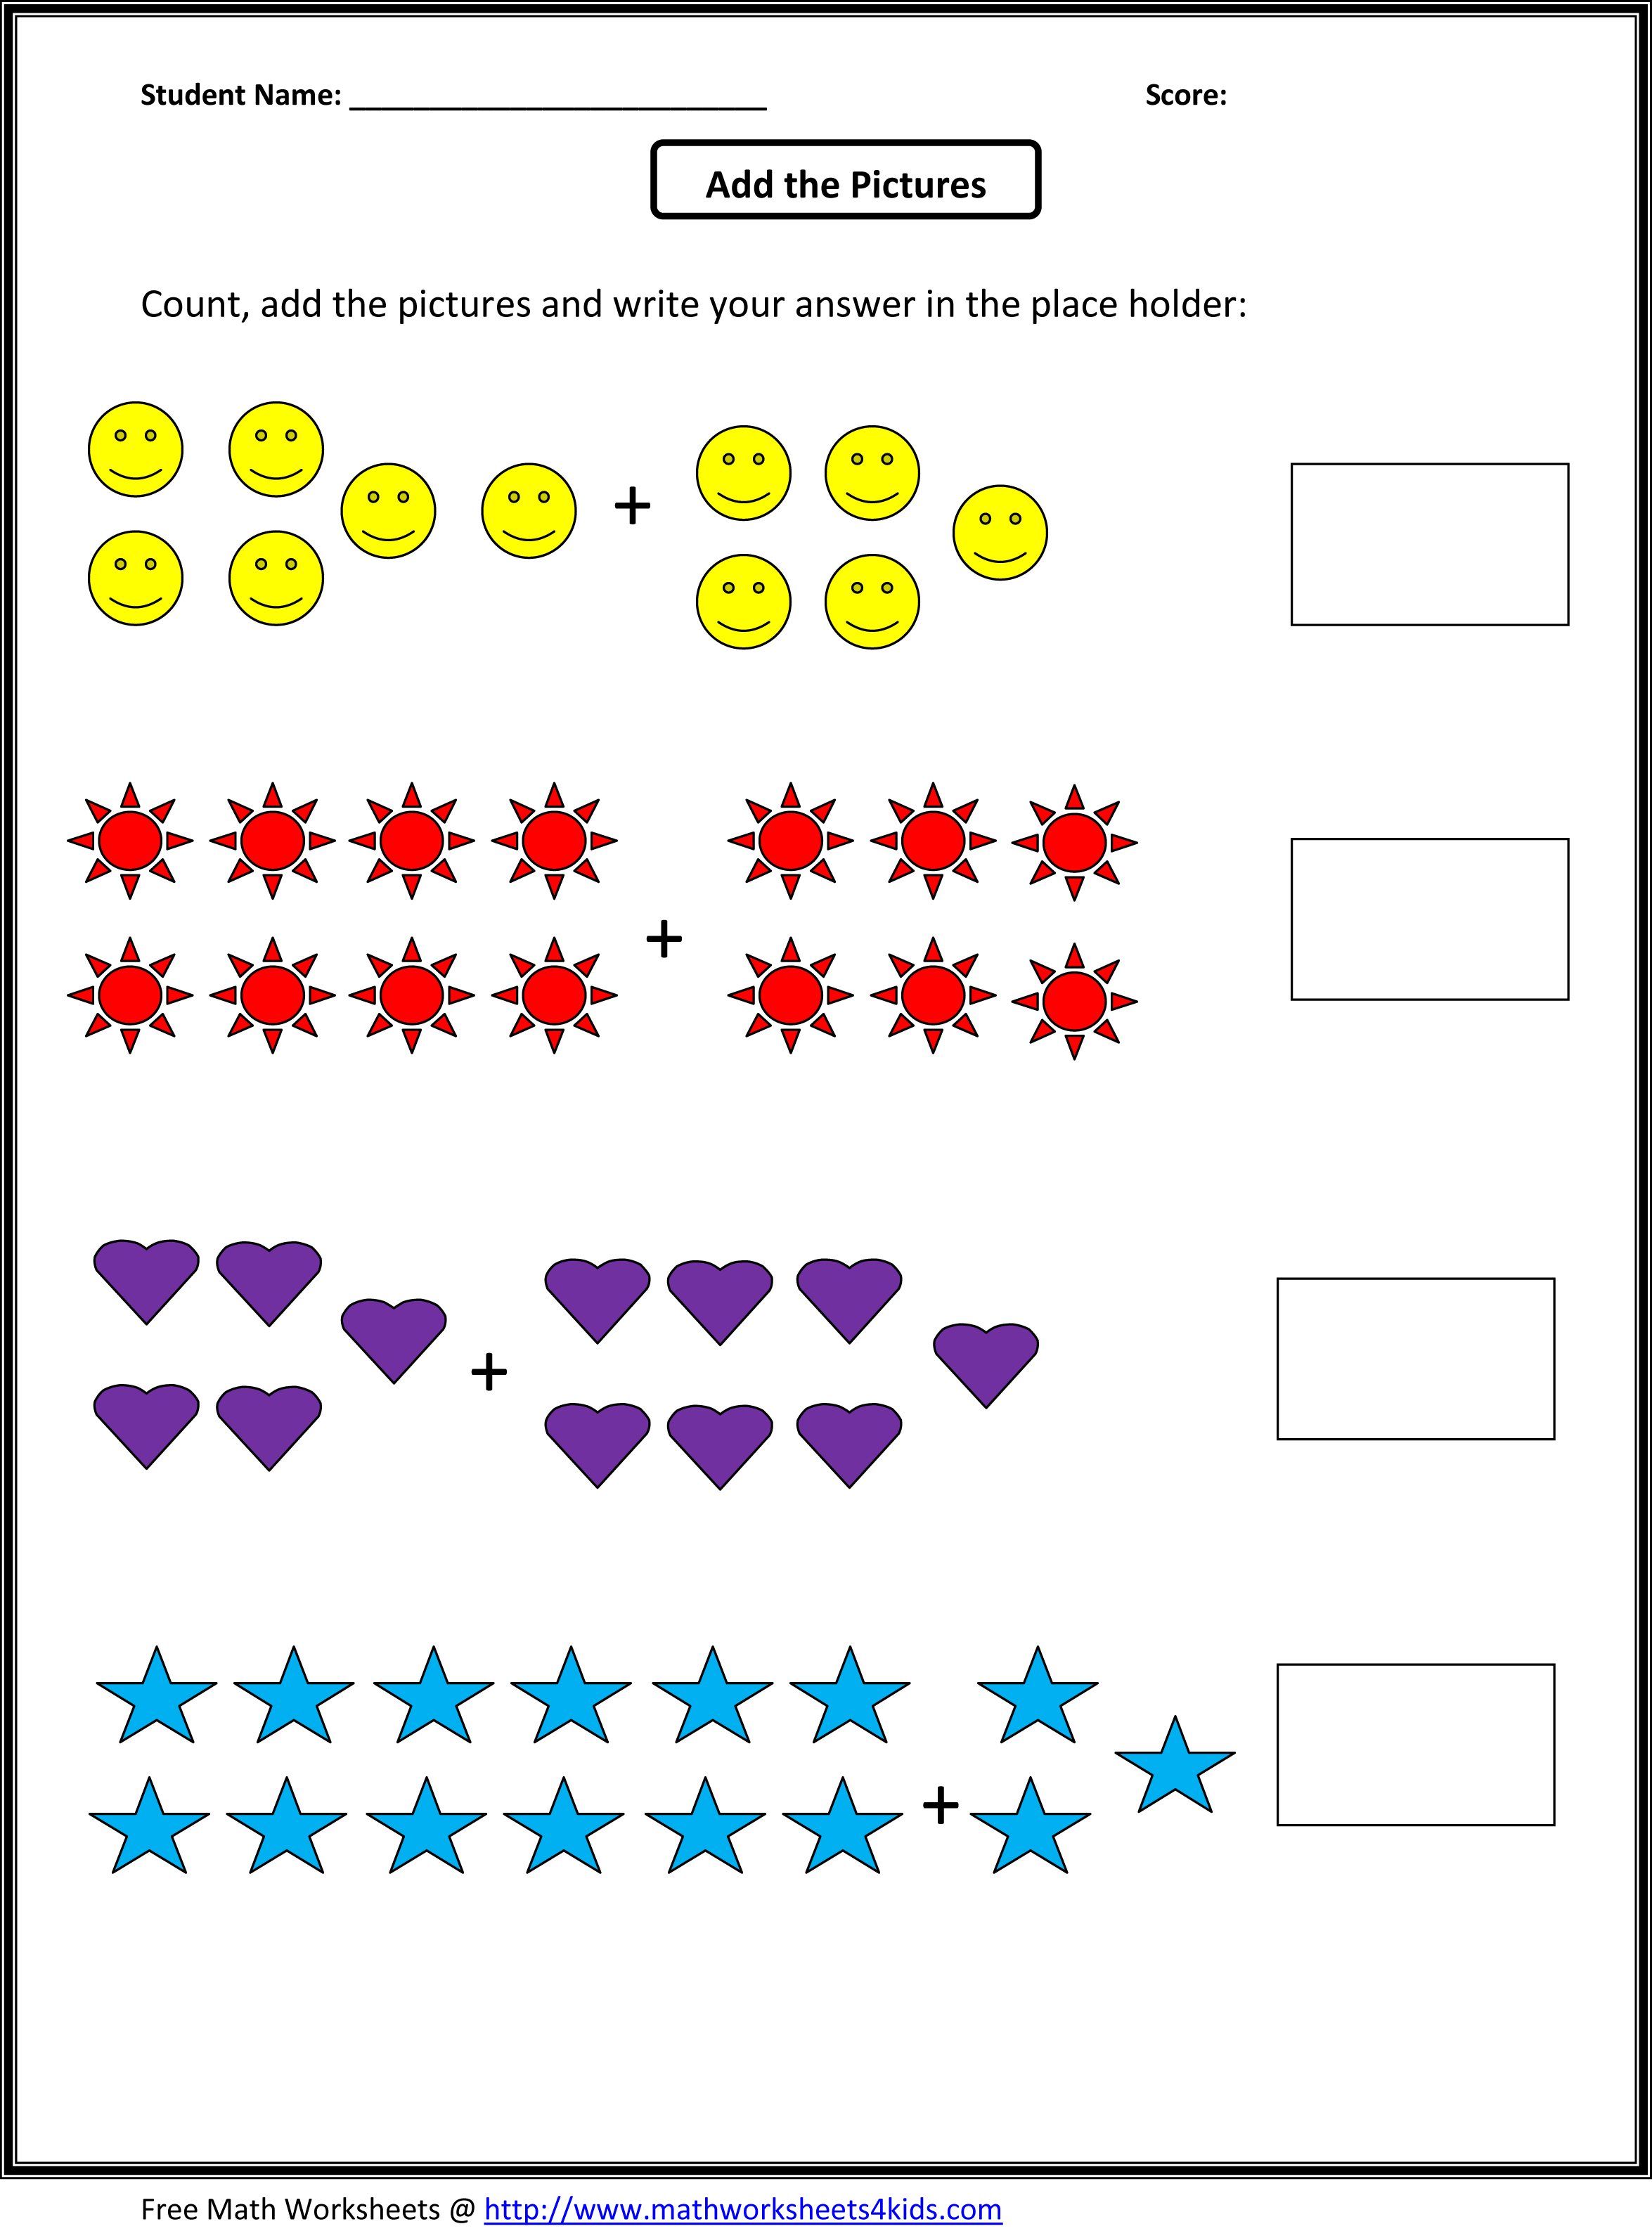 Aldiablosus  Fascinating Grade  Maths Worksheet  Reocurent With Fair Math Worksheets For St Grade Free  Reocurent With Breathtaking Worksheets Phonics Also Year  Geography Worksheets In Addition Worksheets On Measurement For Grade  And Key Stage  Maths Worksheets As Well As Comparison Worksheets For Kindergarten Additionally Multiply And Divide Exponents Worksheet From Reocurentcom With Aldiablosus  Fair Grade  Maths Worksheet  Reocurent With Breathtaking Math Worksheets For St Grade Free  Reocurent And Fascinating Worksheets Phonics Also Year  Geography Worksheets In Addition Worksheets On Measurement For Grade  From Reocurentcom